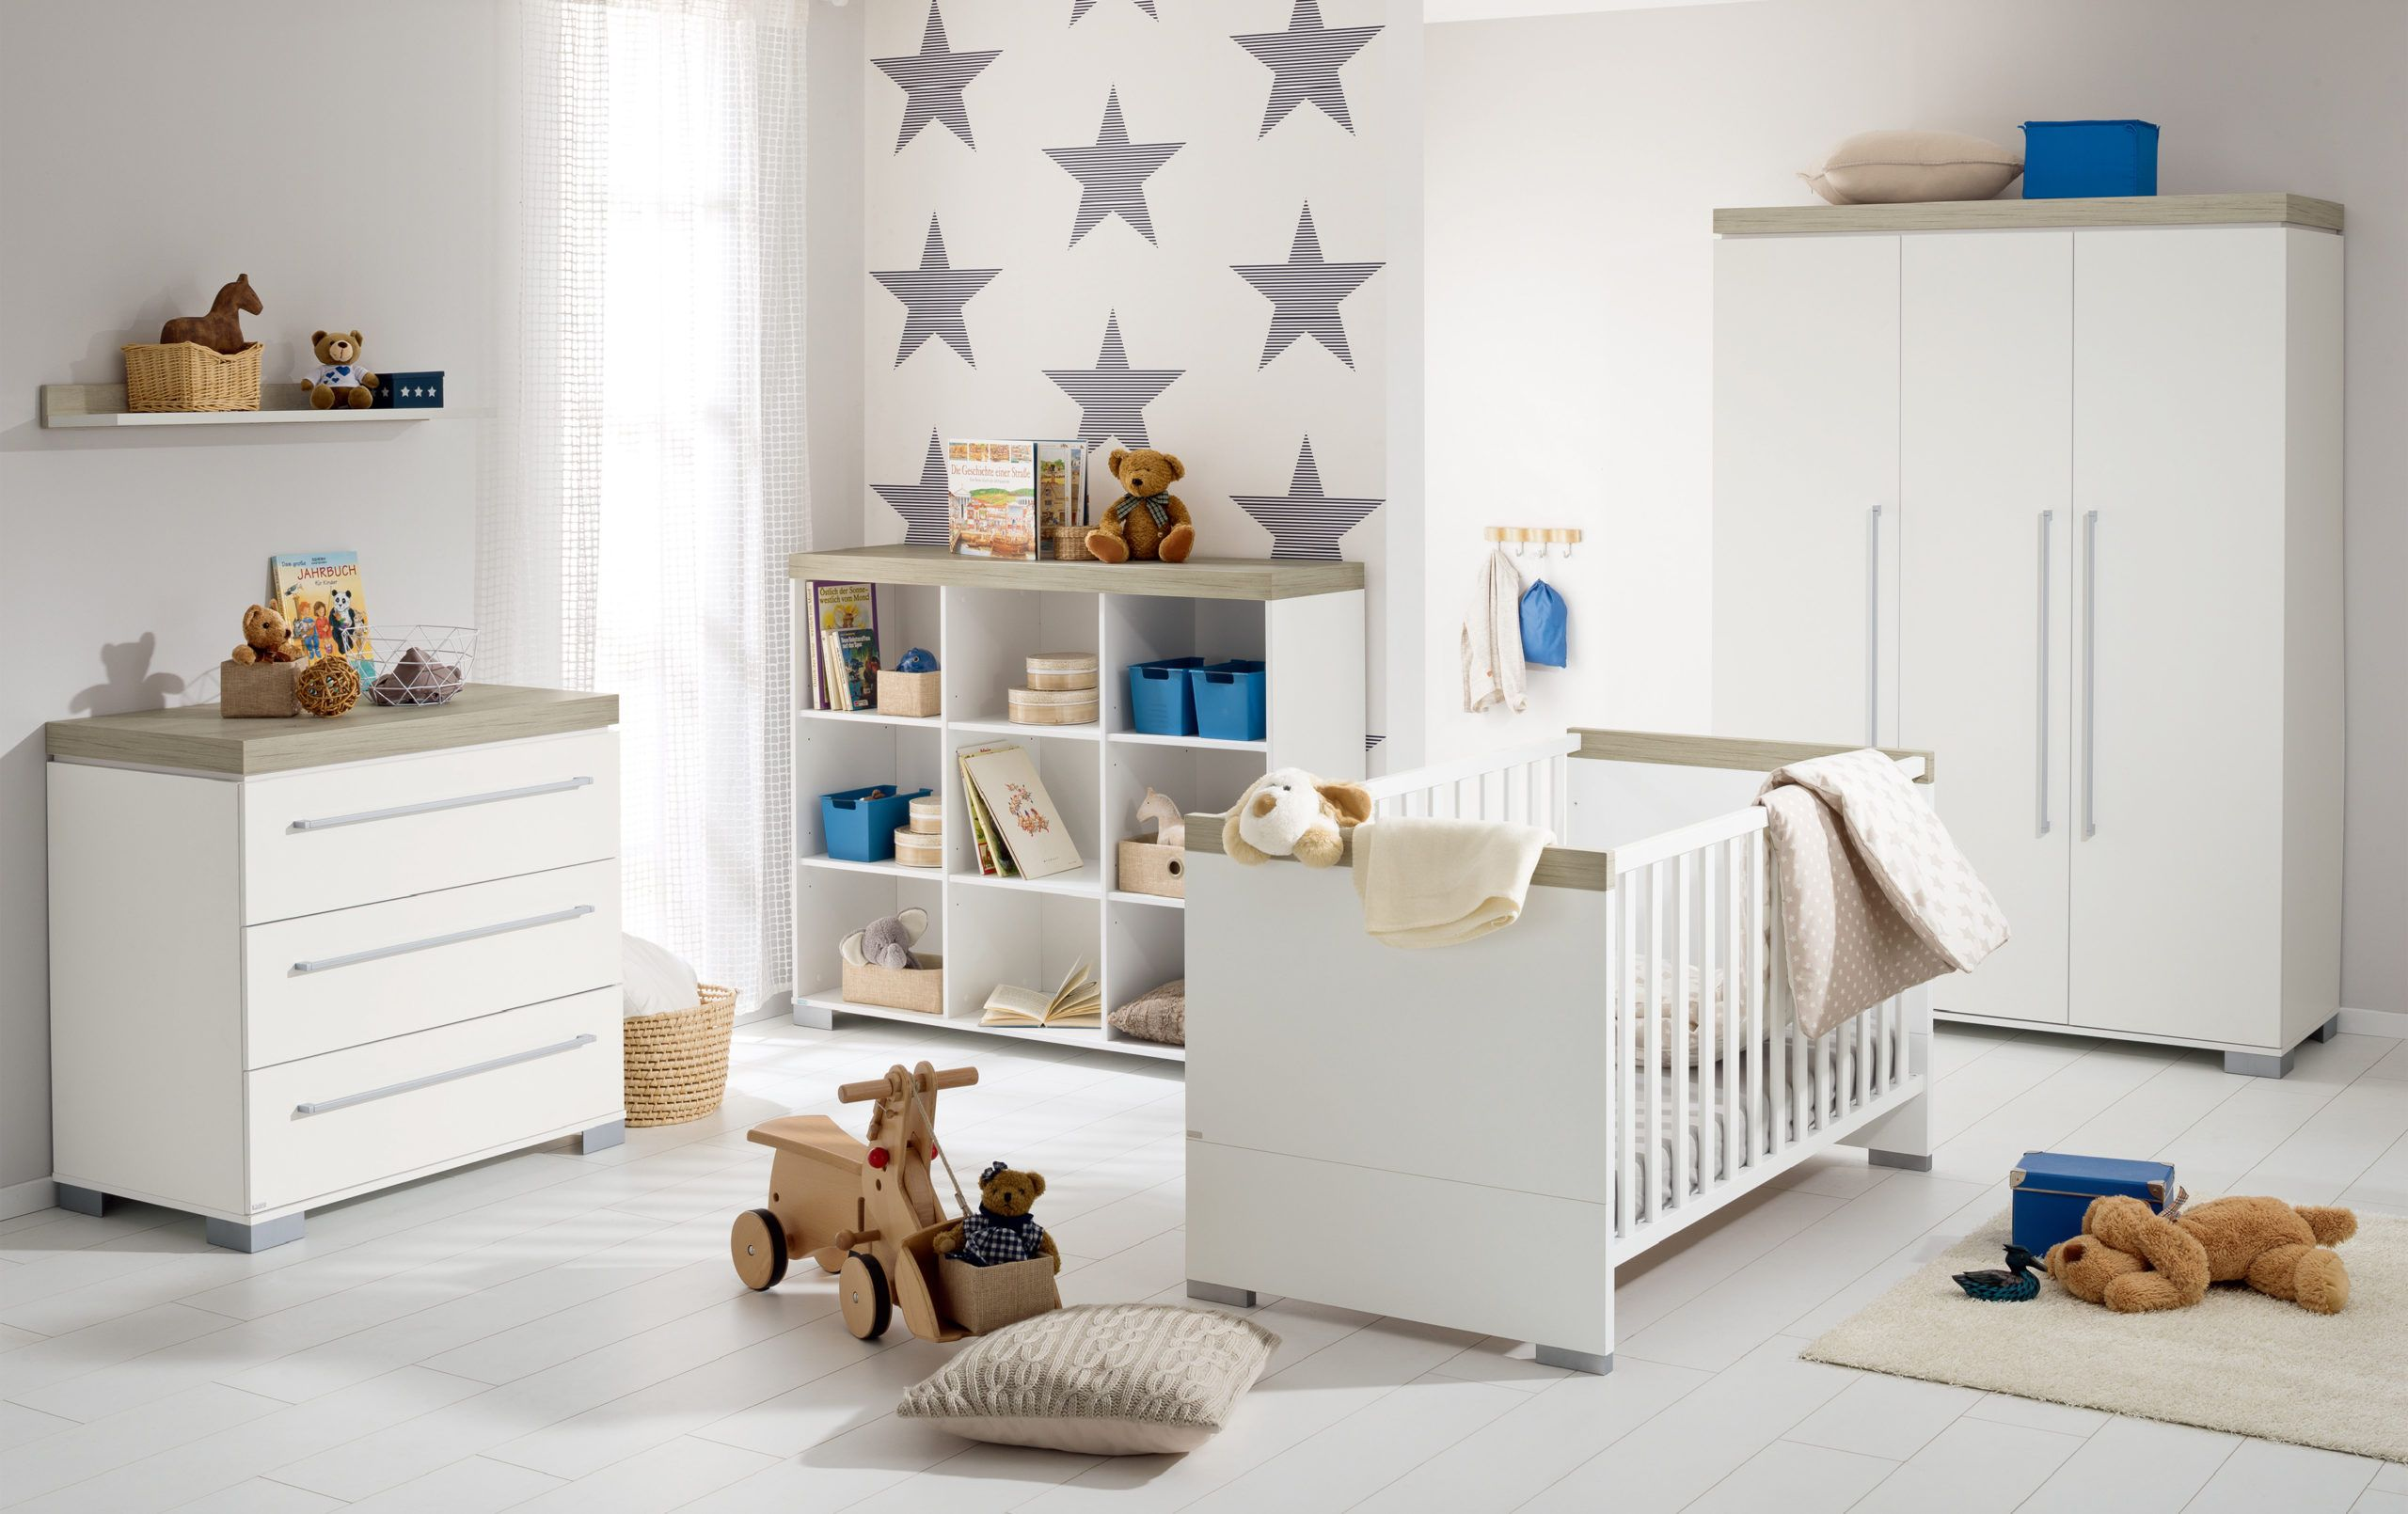 Paidi Hong Kong Kira Baby Collection In 2020 Small House Living Home Decor Furniture